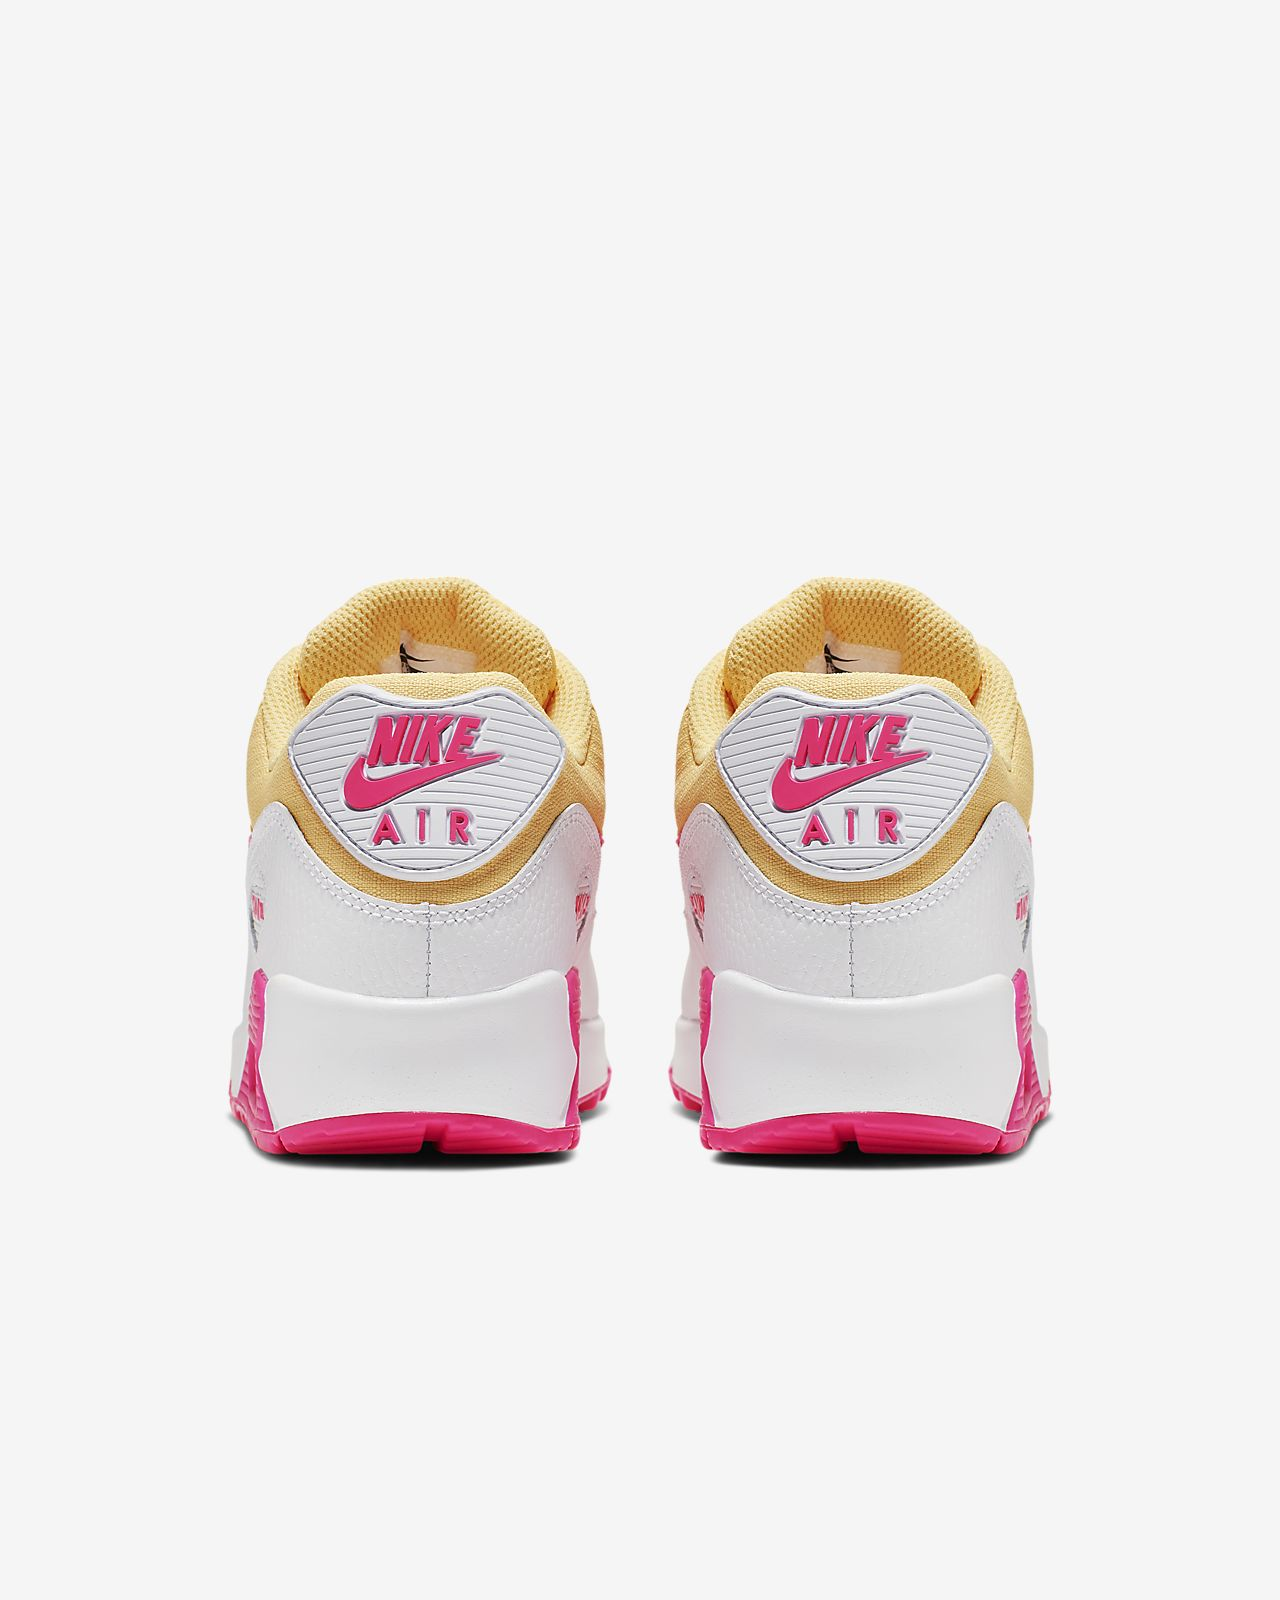 new style c6701 7ec81 ... Nike Air Max 90 Women s Shoe